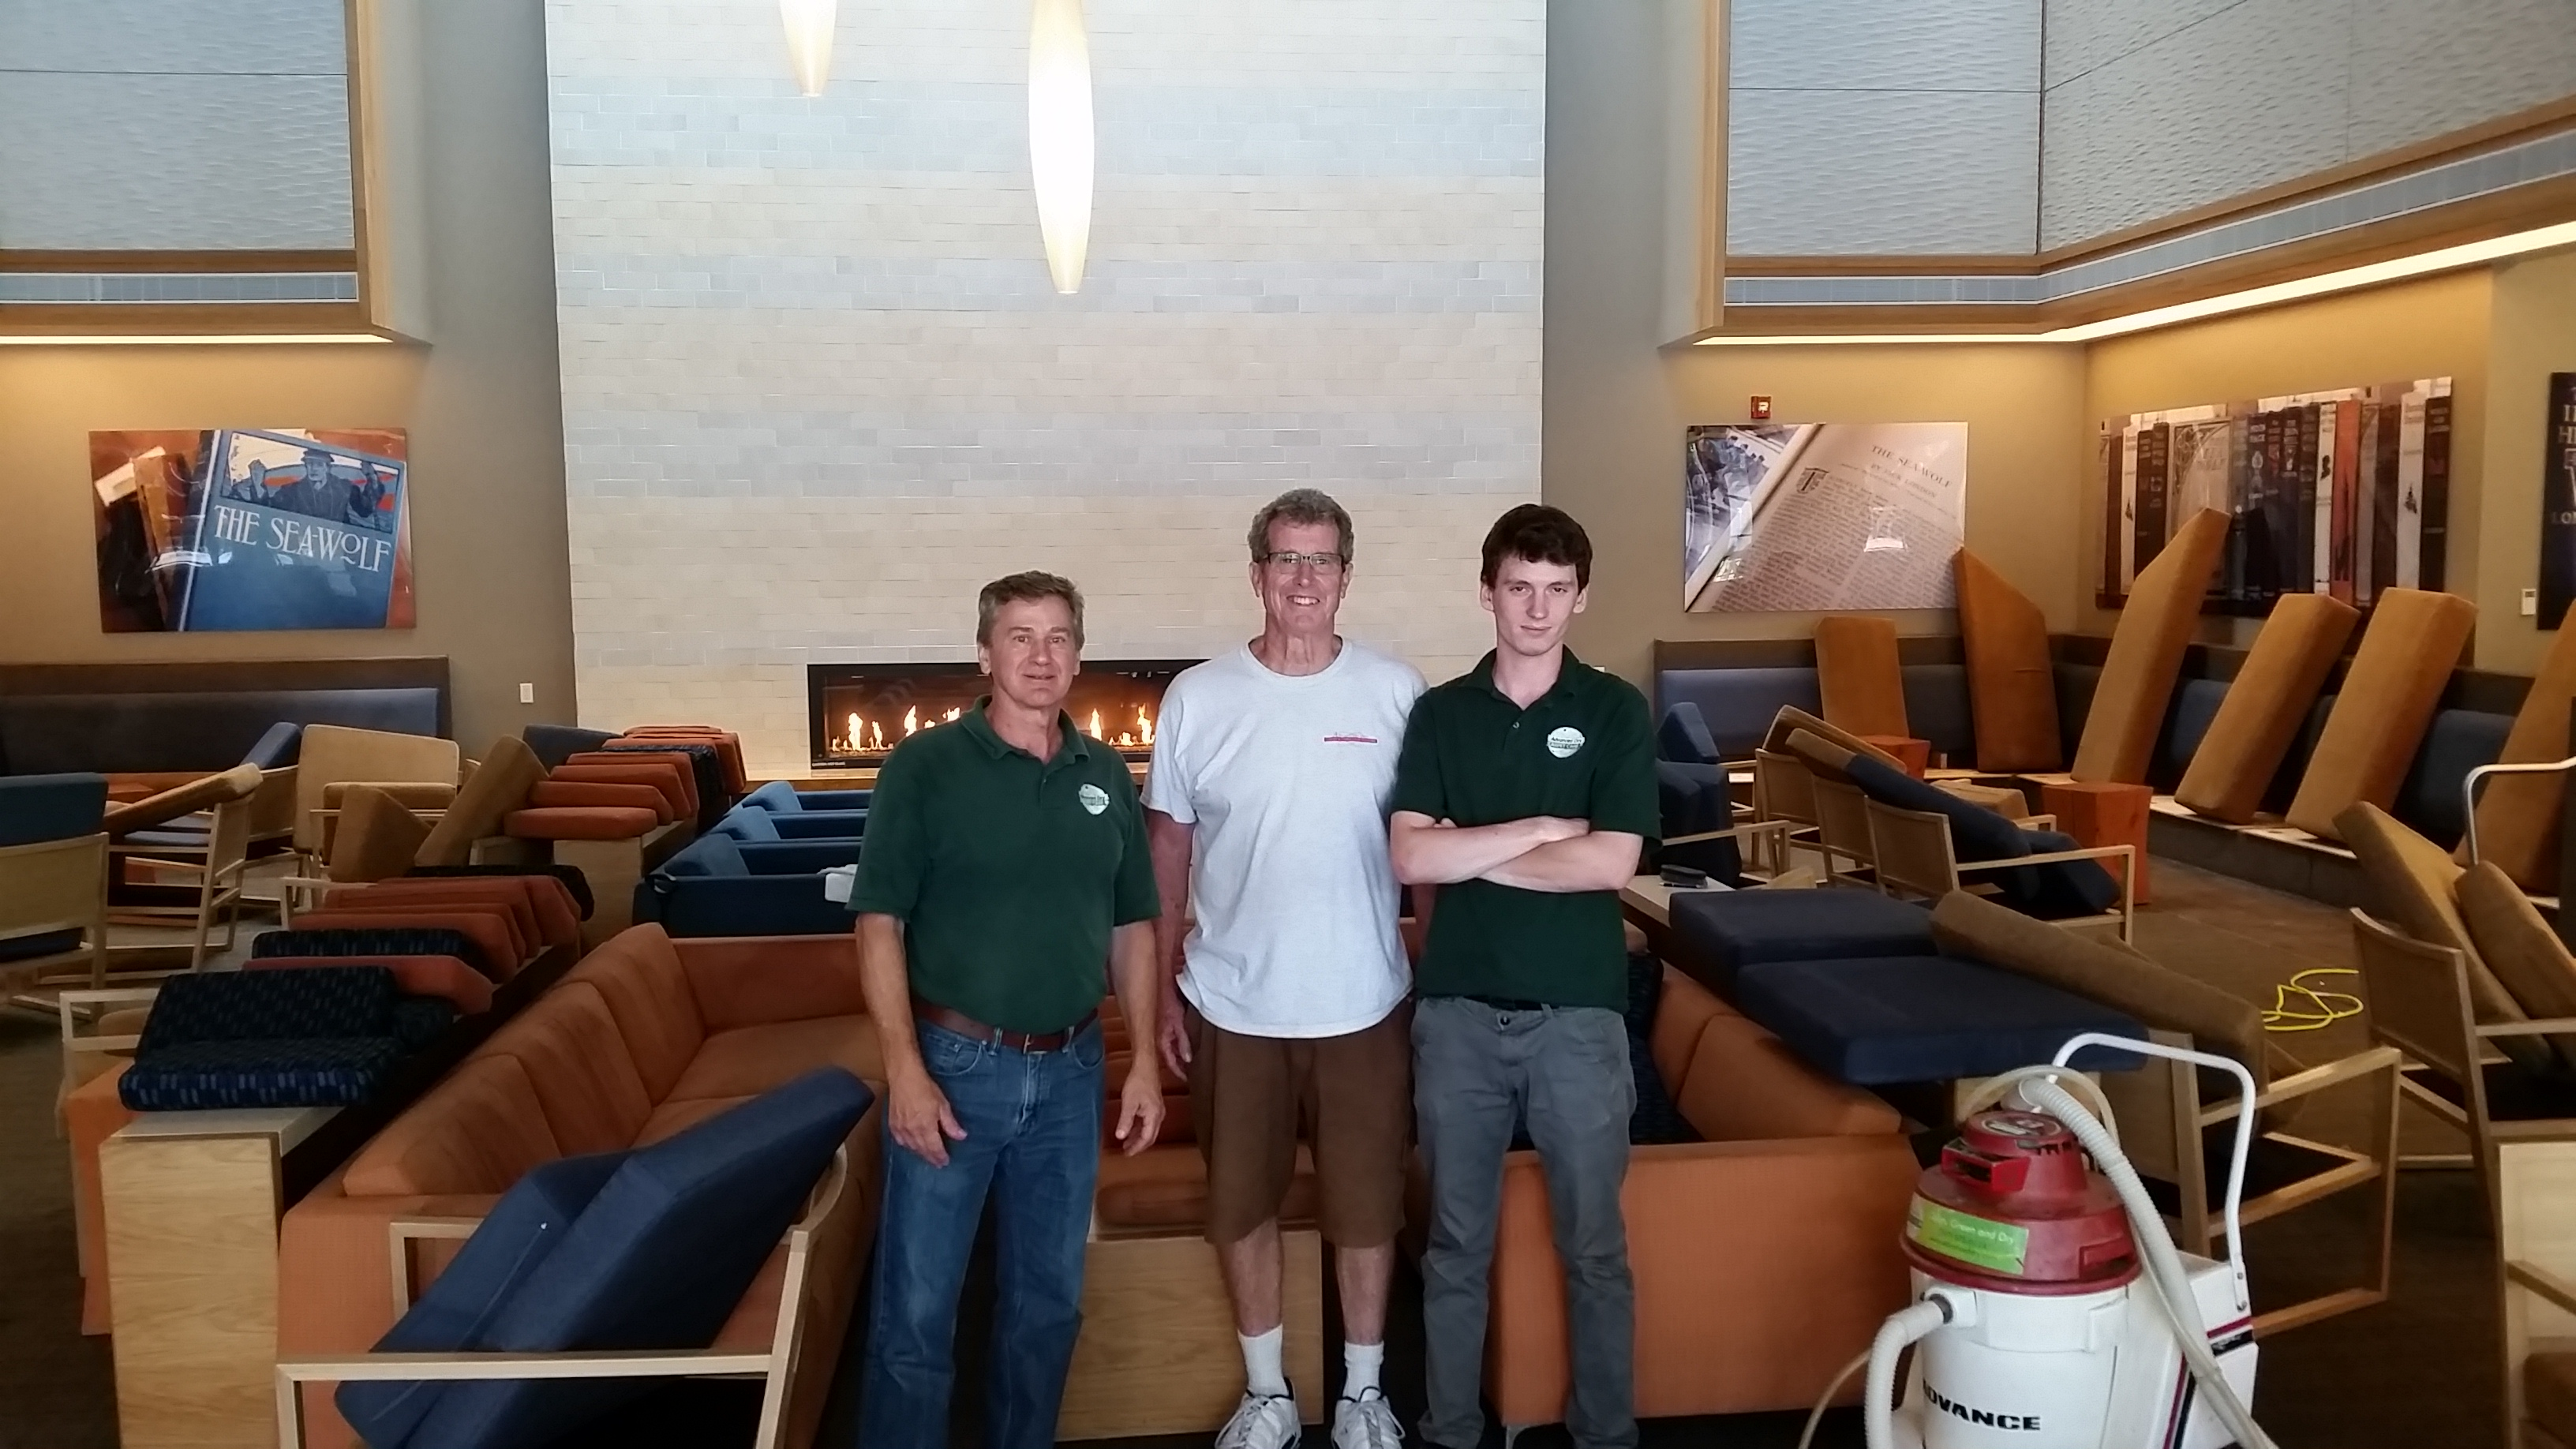 Dave, Kent and Anthony - at Sonoma State University Student Center cleaning upholstery